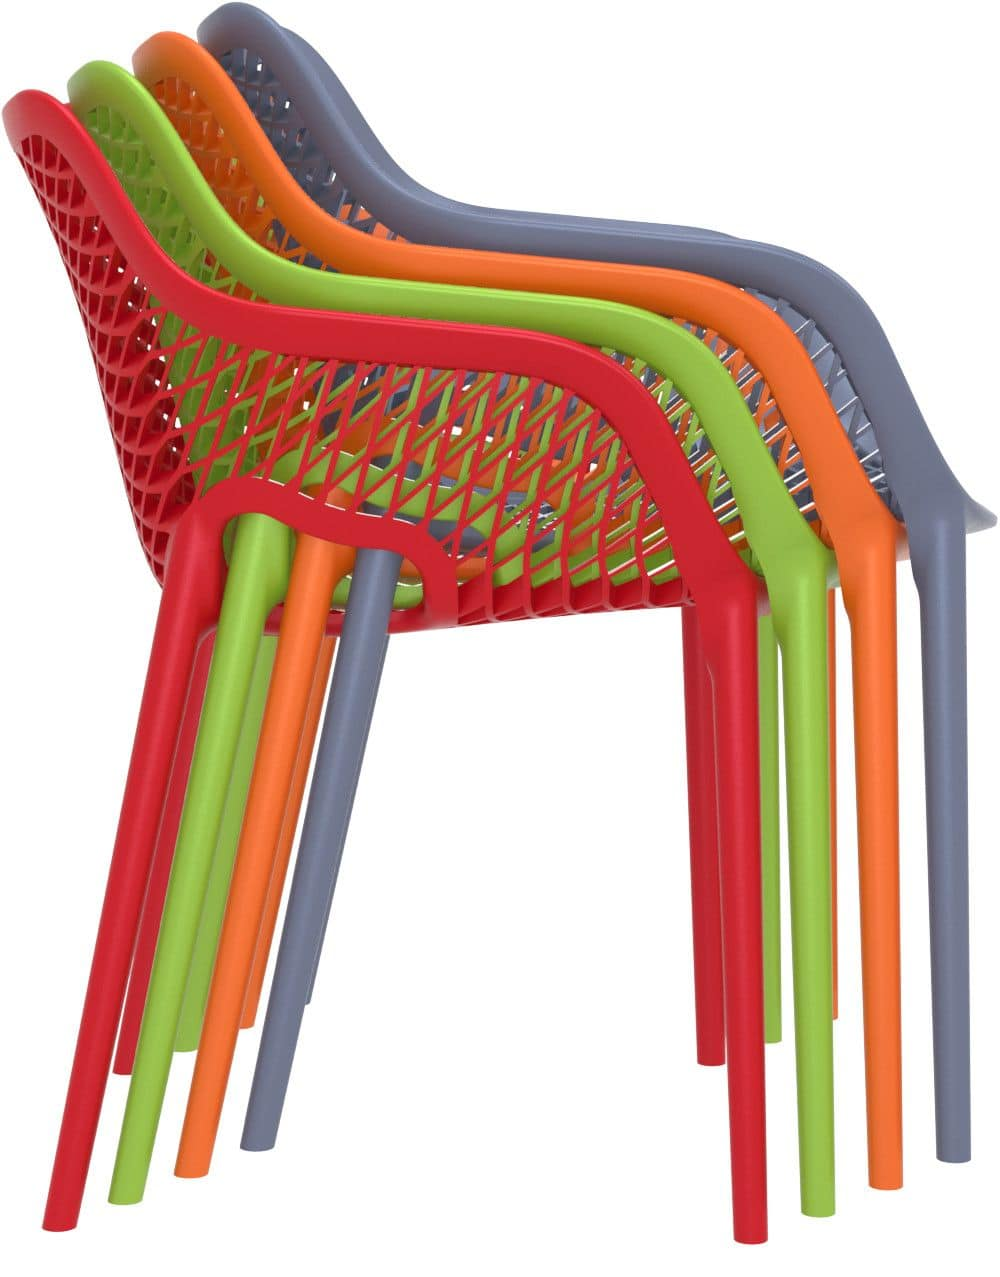 Alice - XL, Polypropylene armchair, ideal for outdoor bars and restaurants